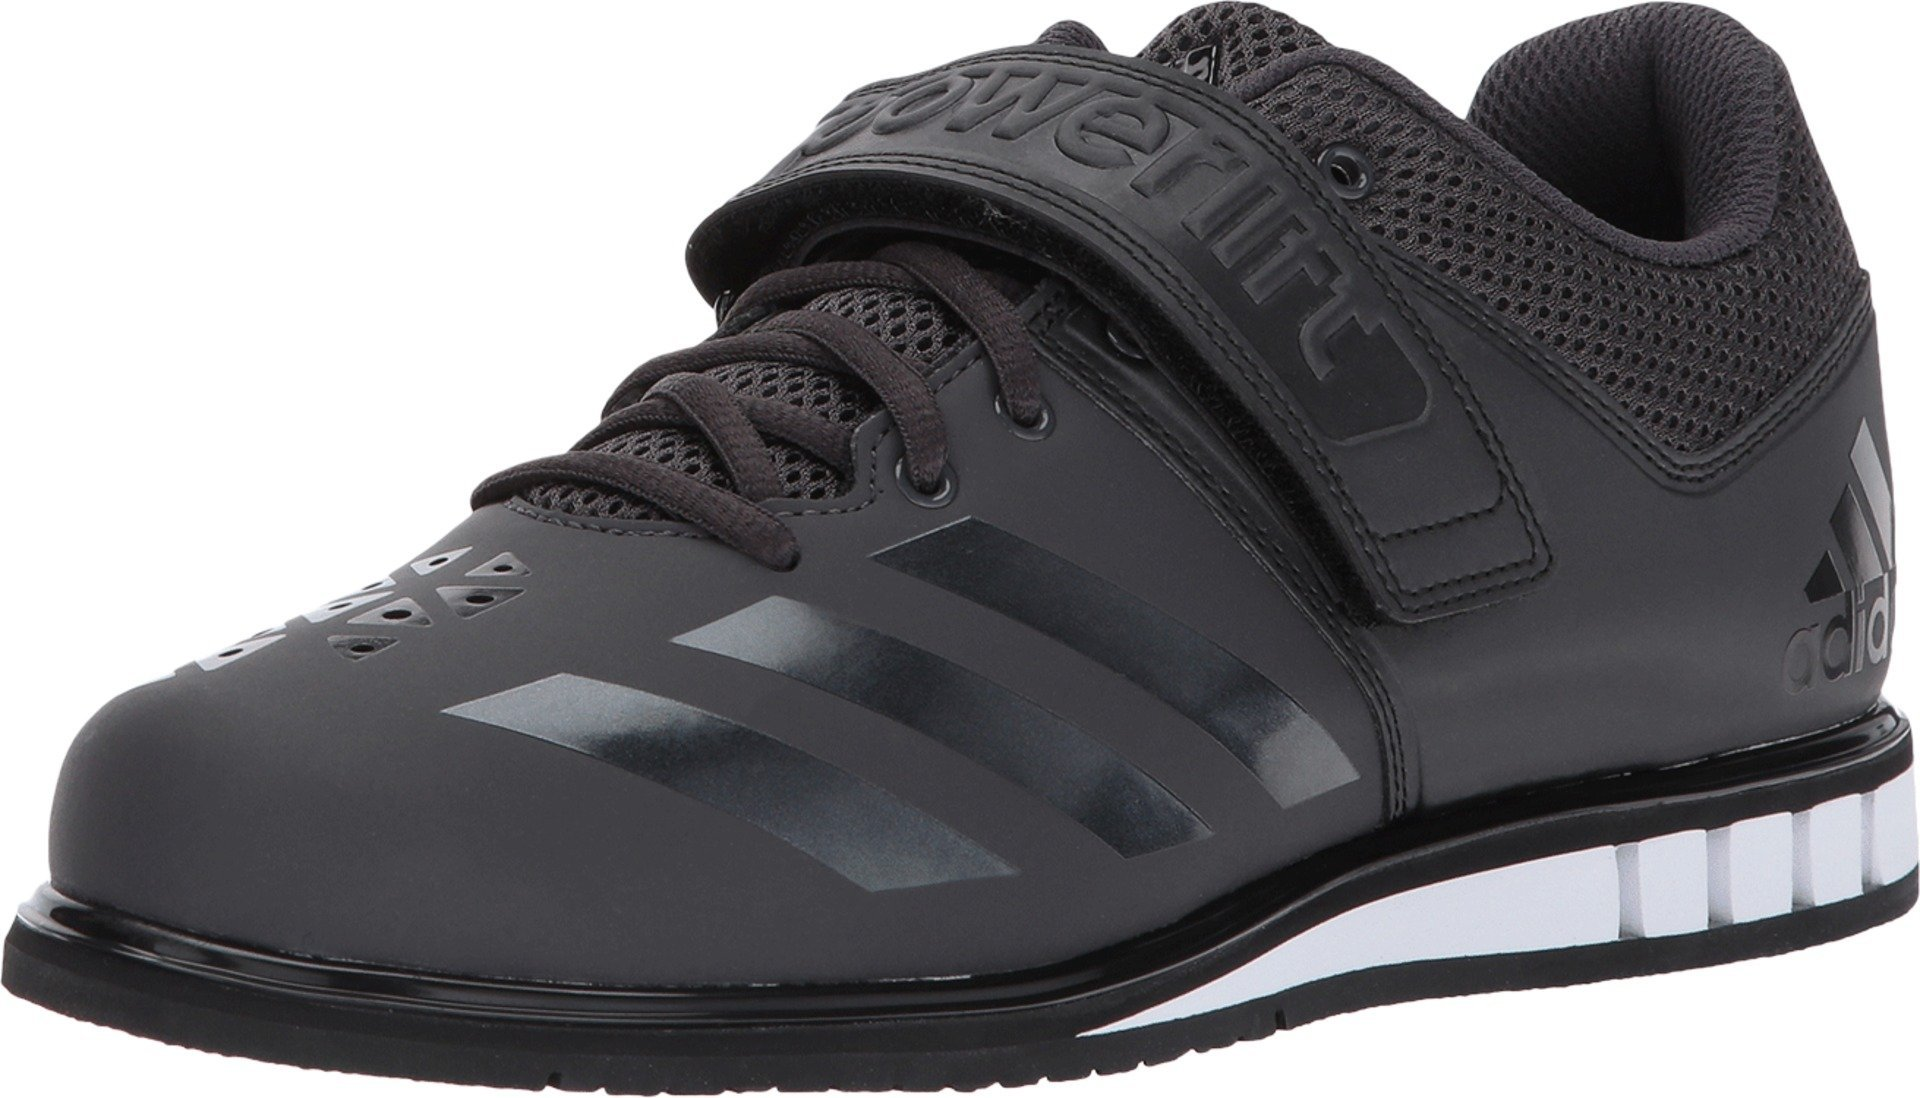 adidas Performance  Men's Powerlift.3.1 Cross-Trainer Shoes, Utility Black/Black/White, (10.5 M US) by adidas